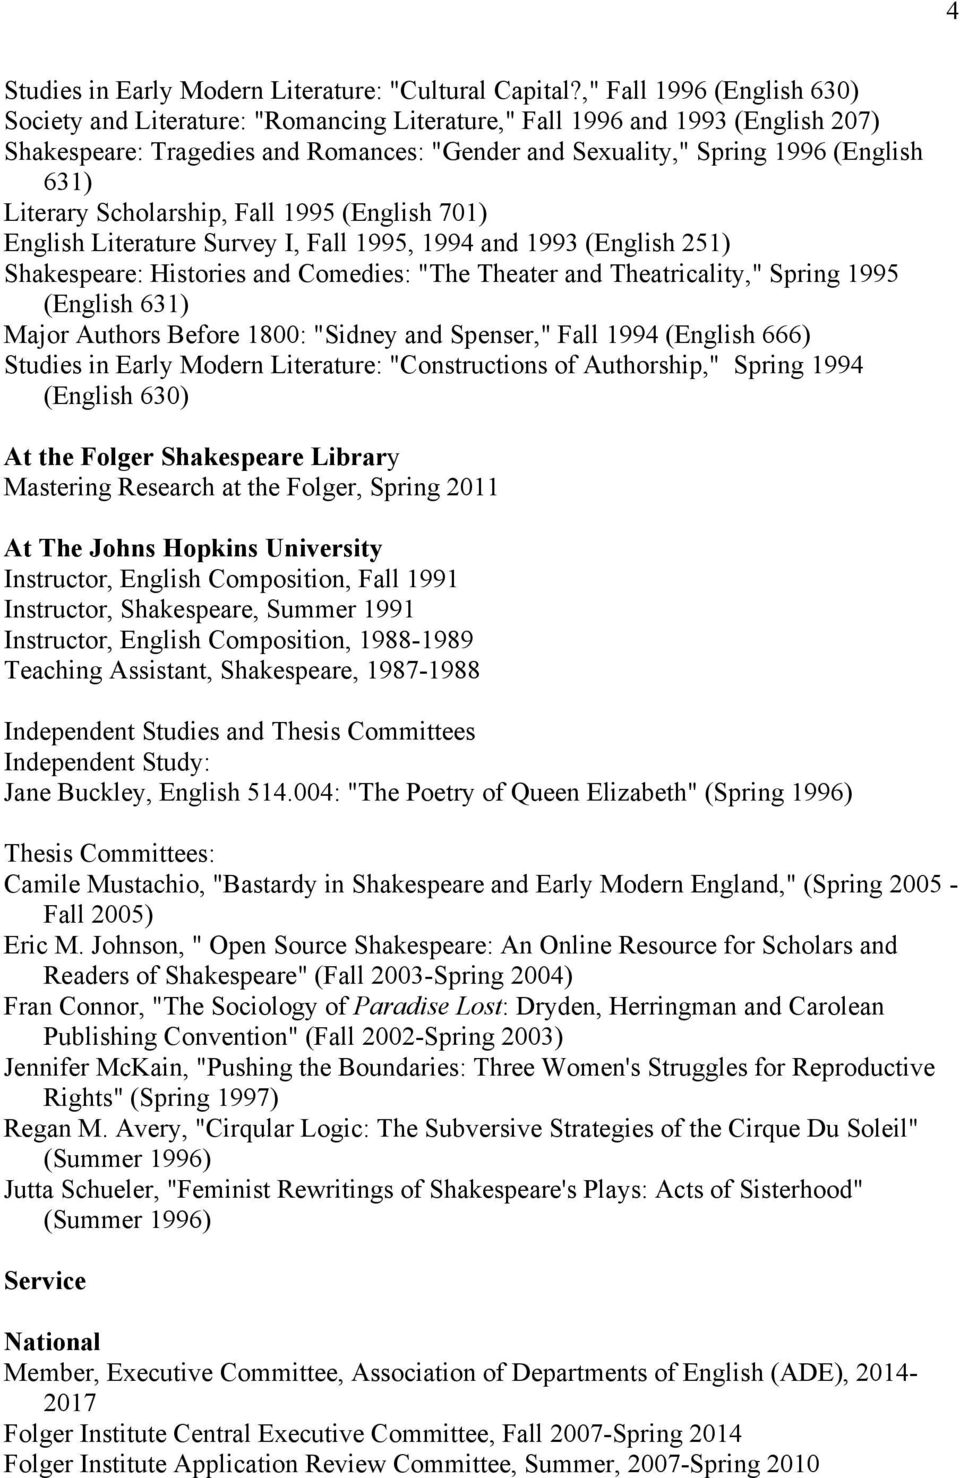 "Literary Scholarship, Fall 1995 (English 701) English Literature Survey I, Fall 1995, 1994 and 1993 (English 251) Shakespeare: Histories and Comedies: ""The Theater and Theatricality,"" Spring 1995"